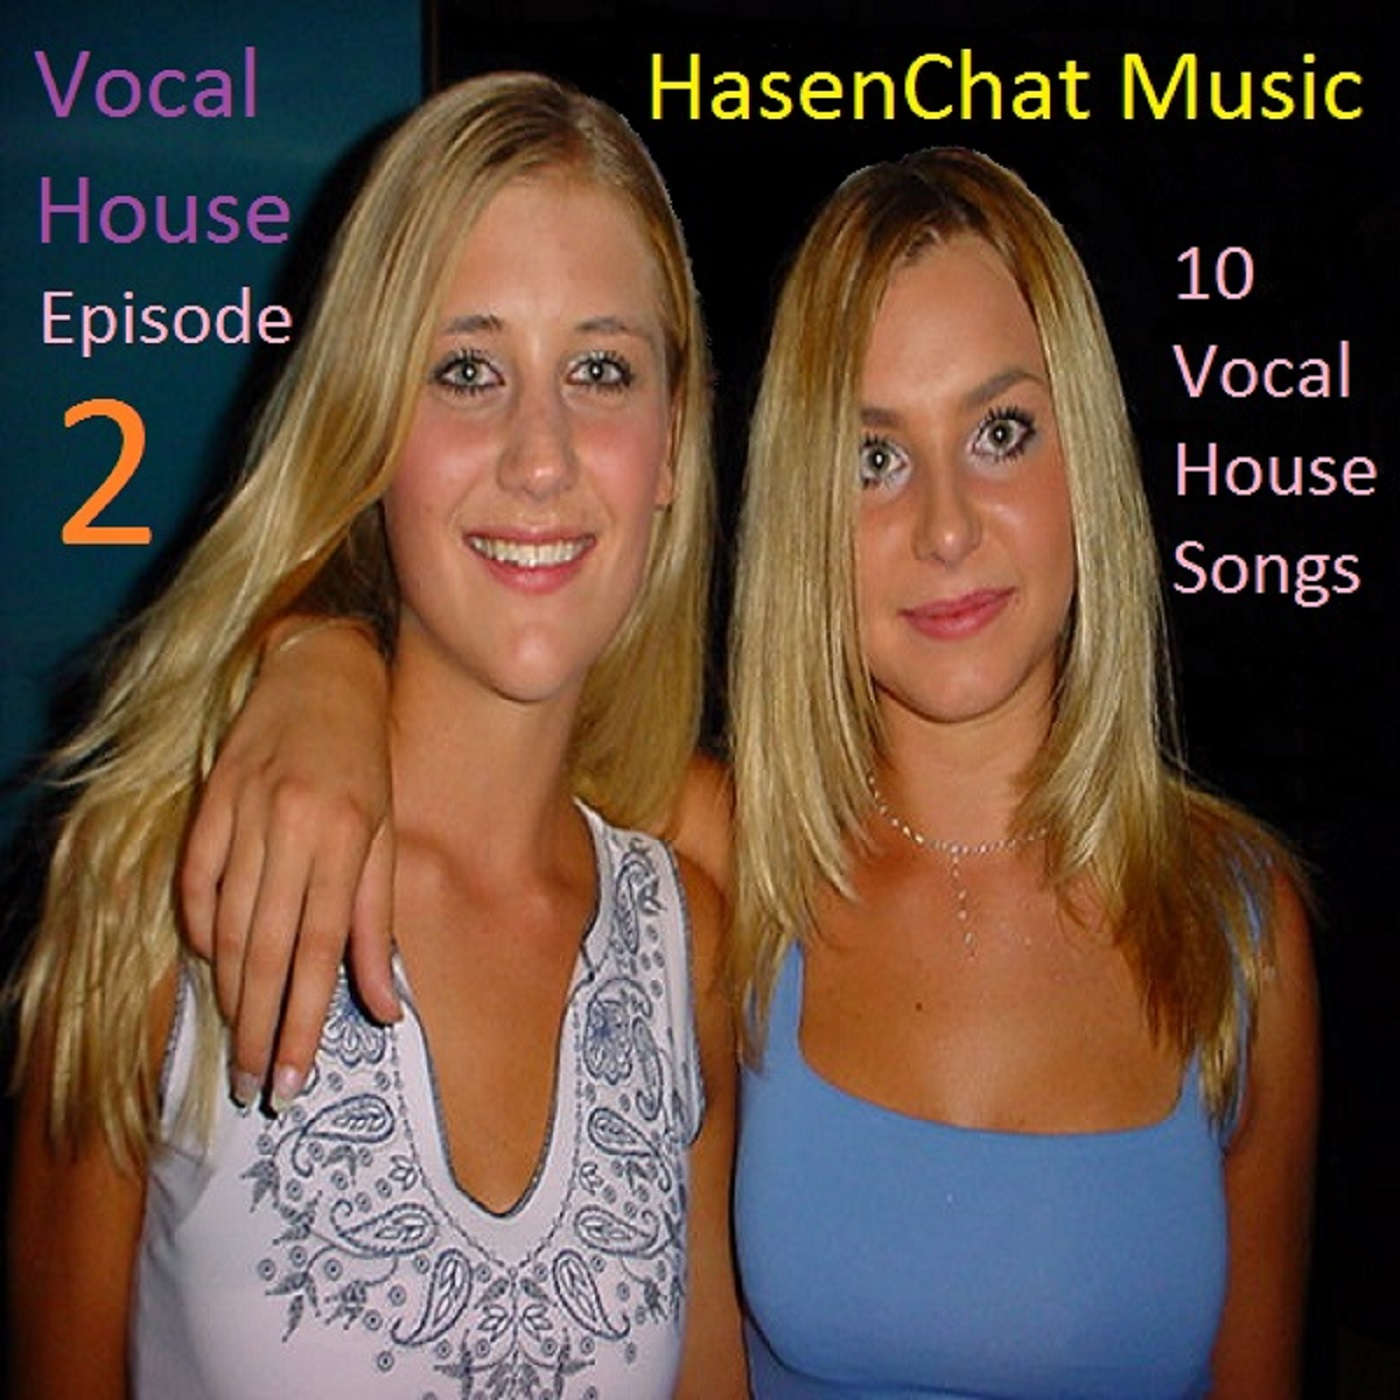 1400x1400 Vocal House Episode 2 Cover ohne www